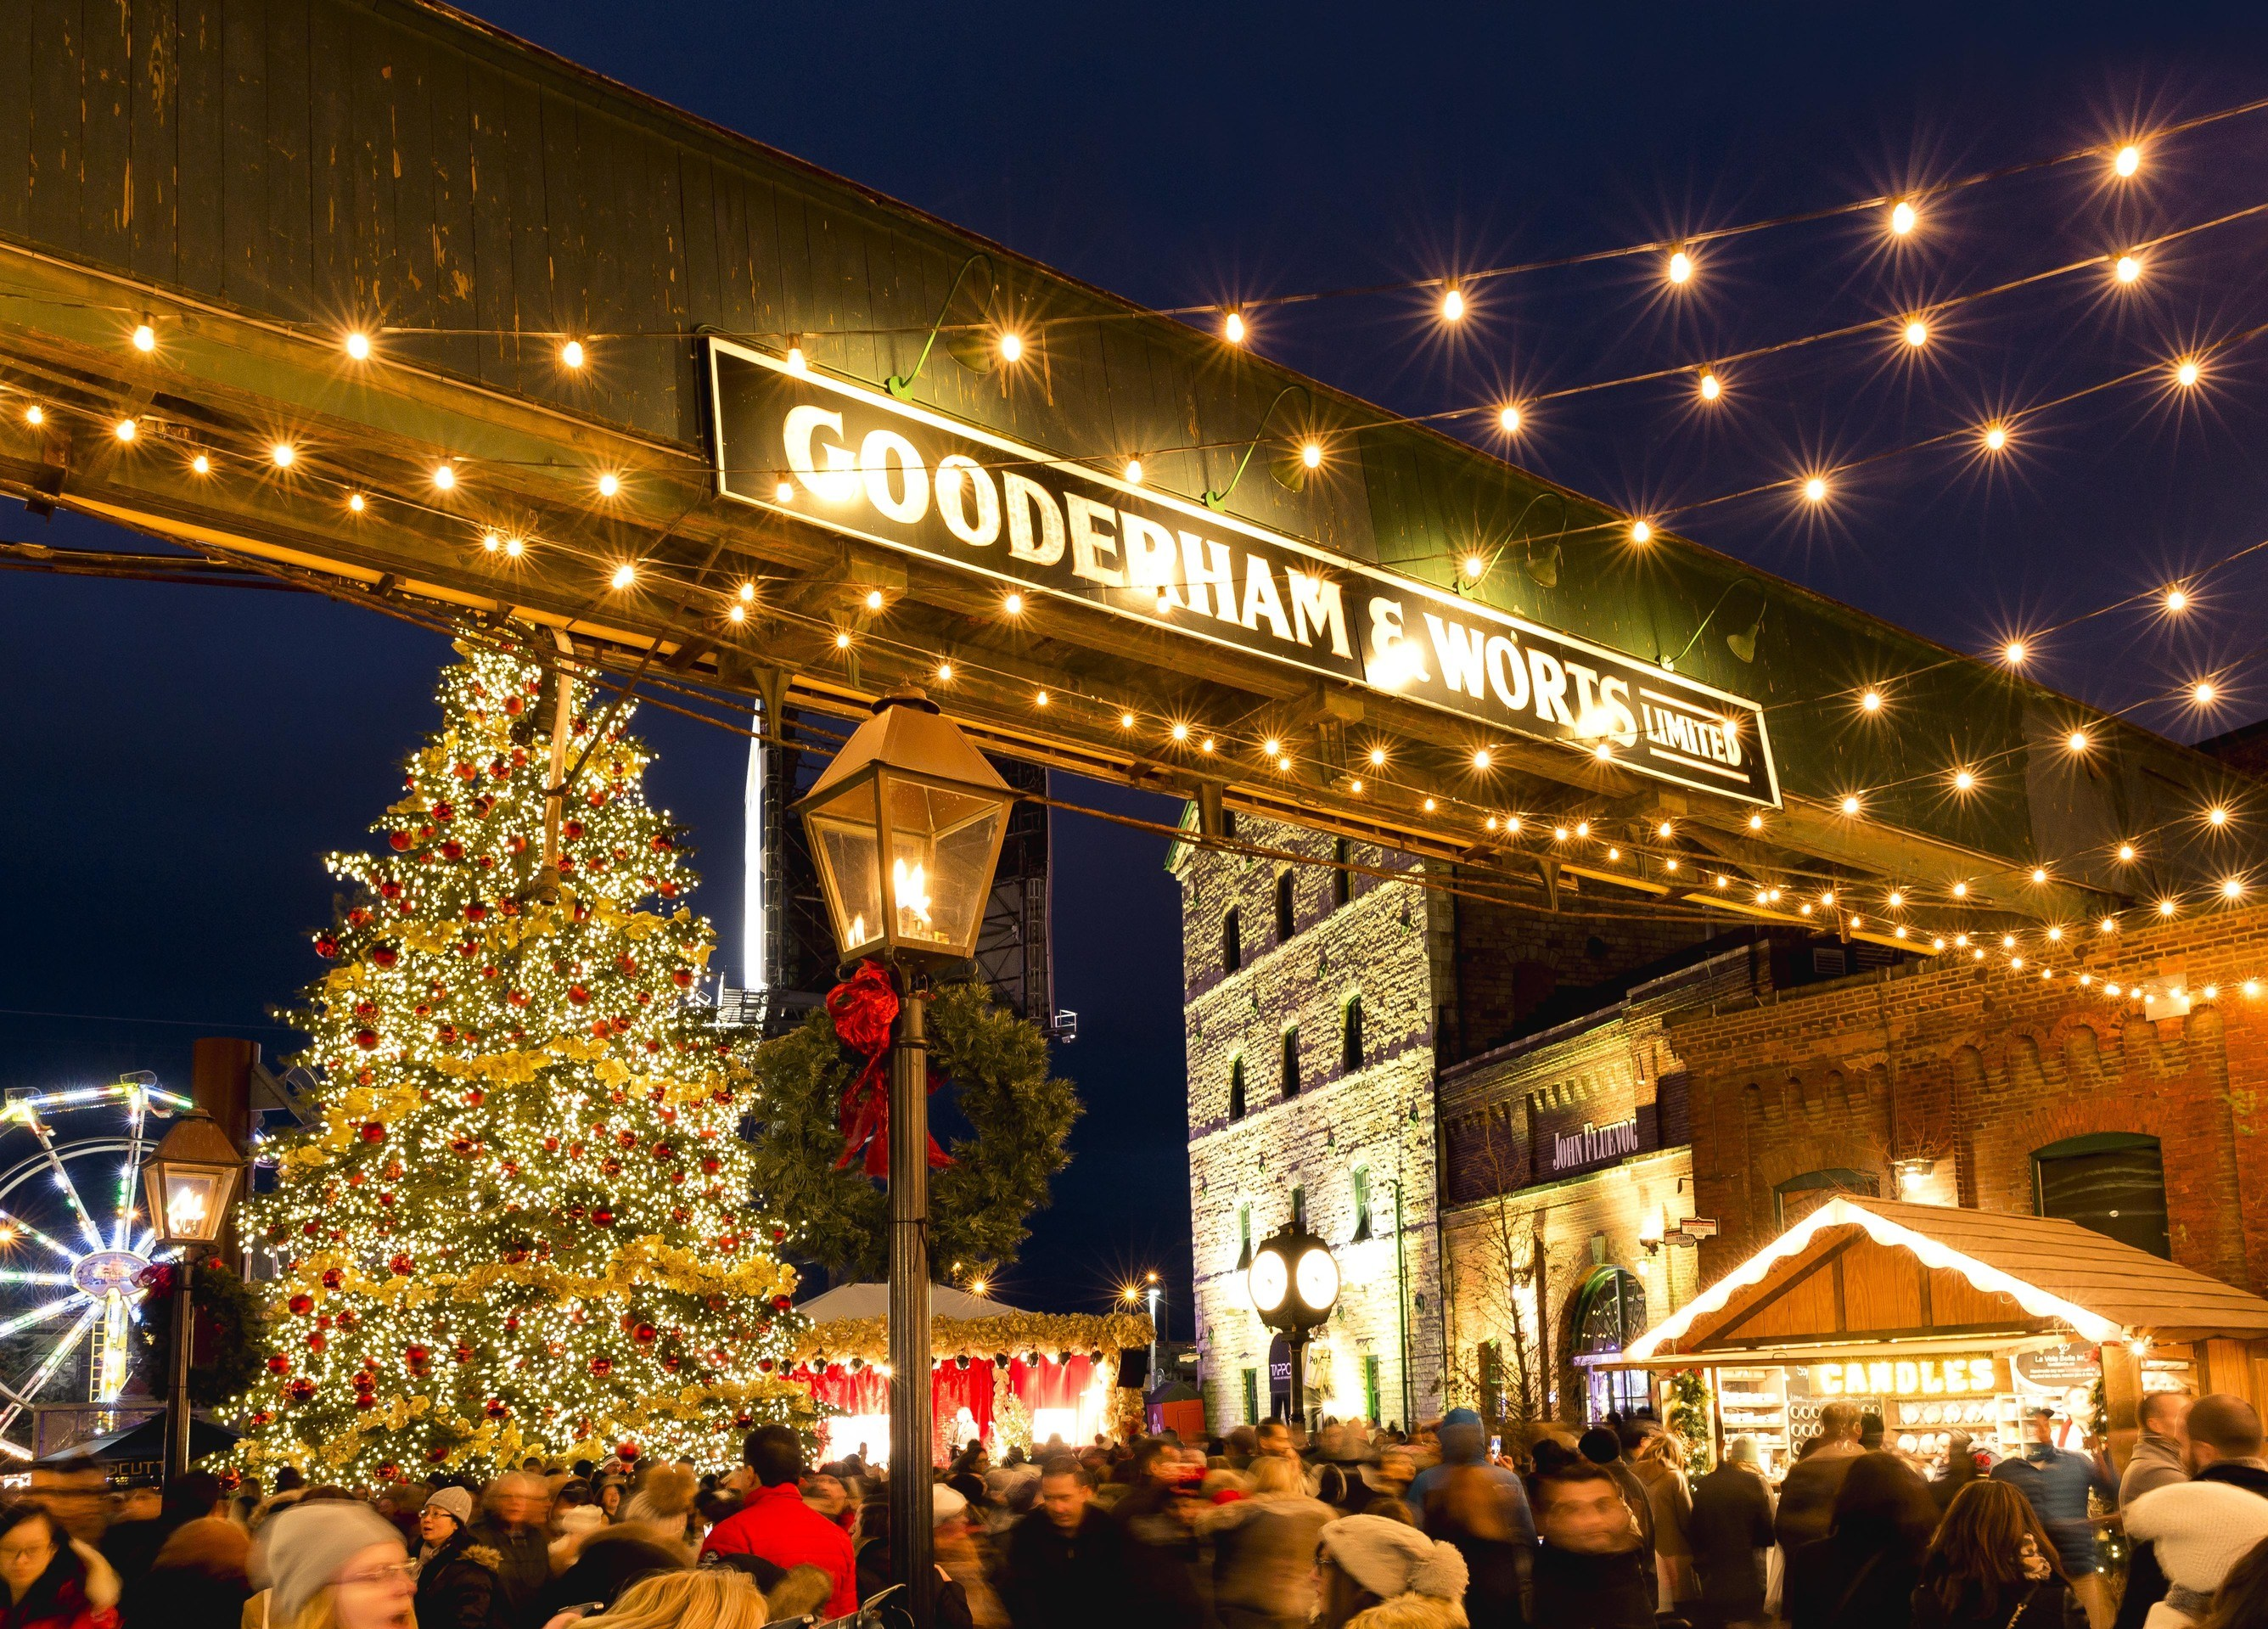 The Toronto Christmas Market Is Opening This Week